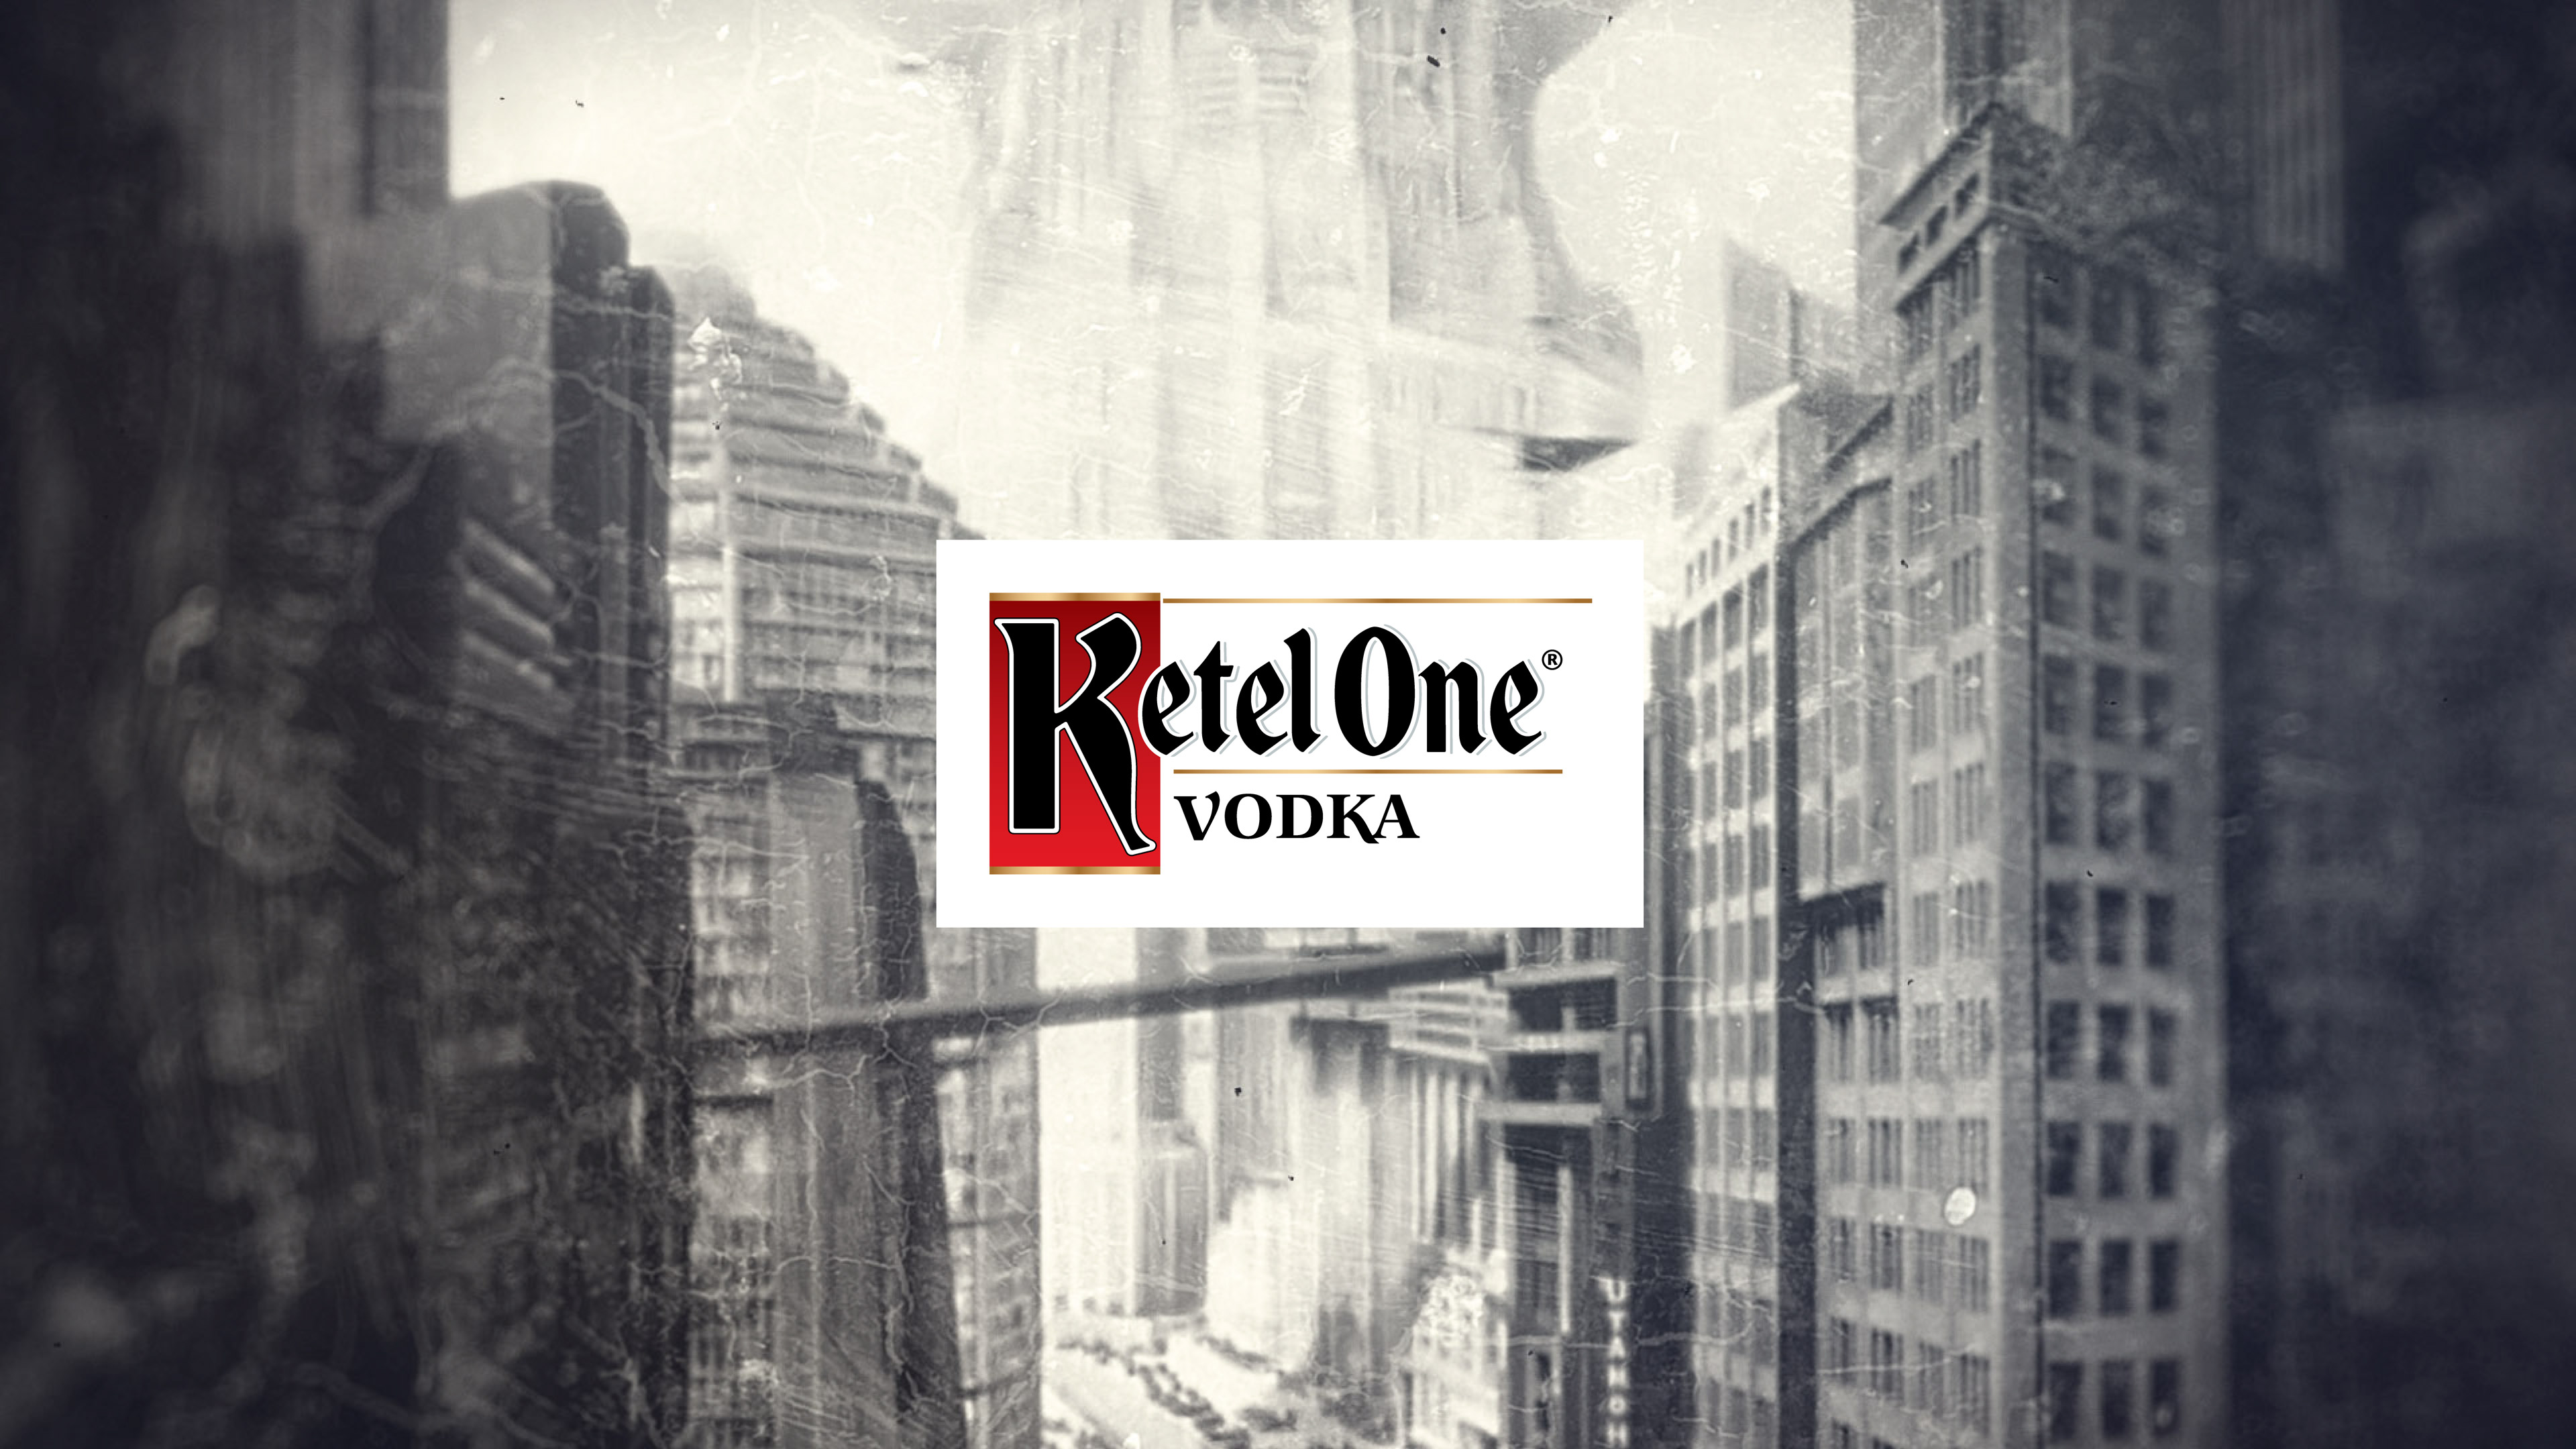 oz_mfg_company_work_ketel_one_vodka_01